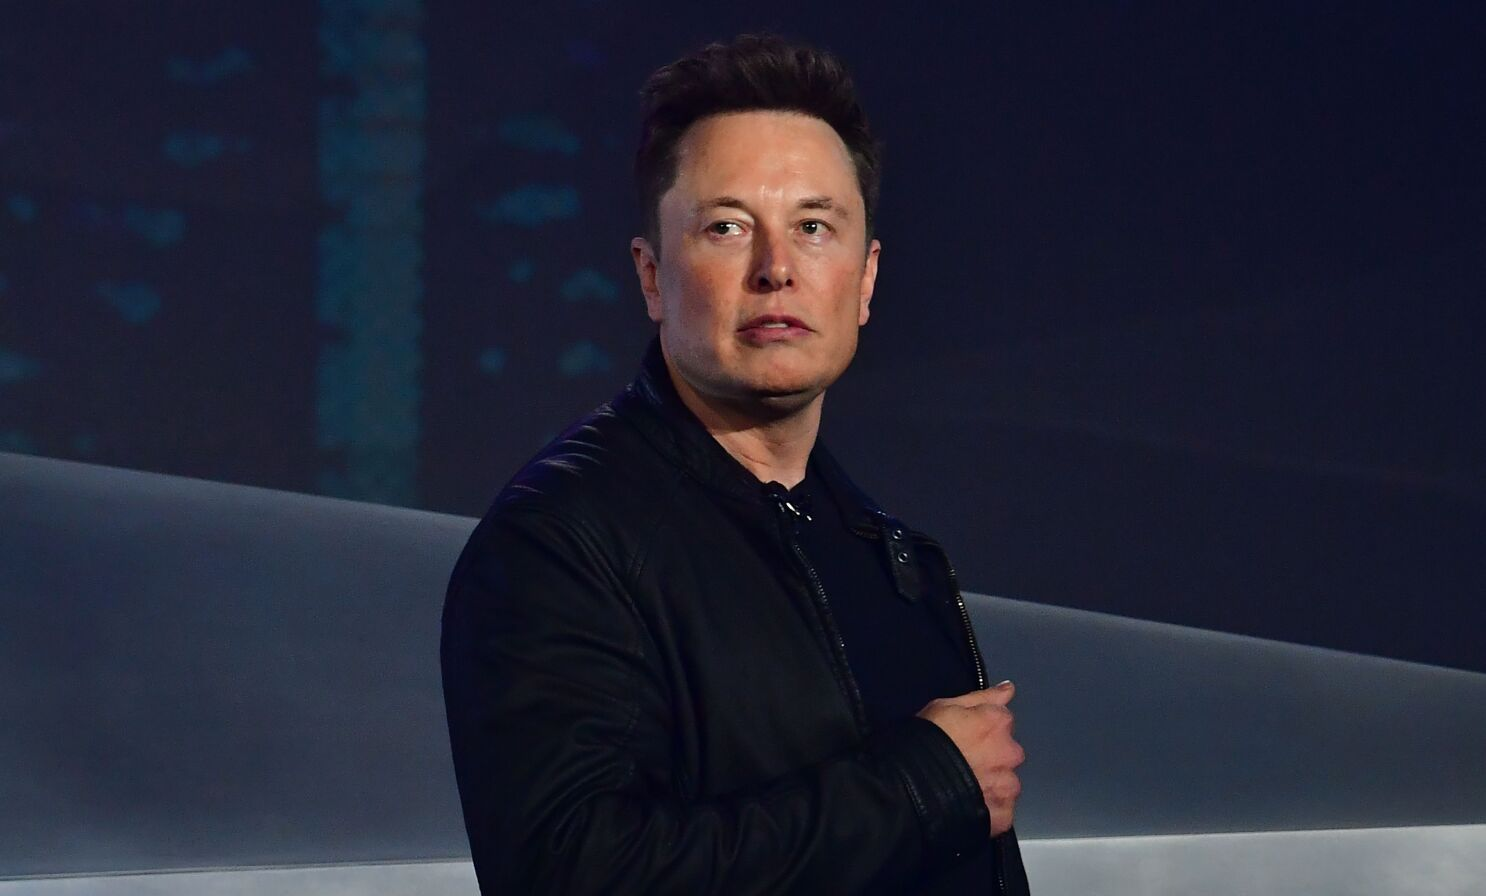 Elon Musk Tests Positive For Covid 19 But Calls Test Bogus Los Angeles Times